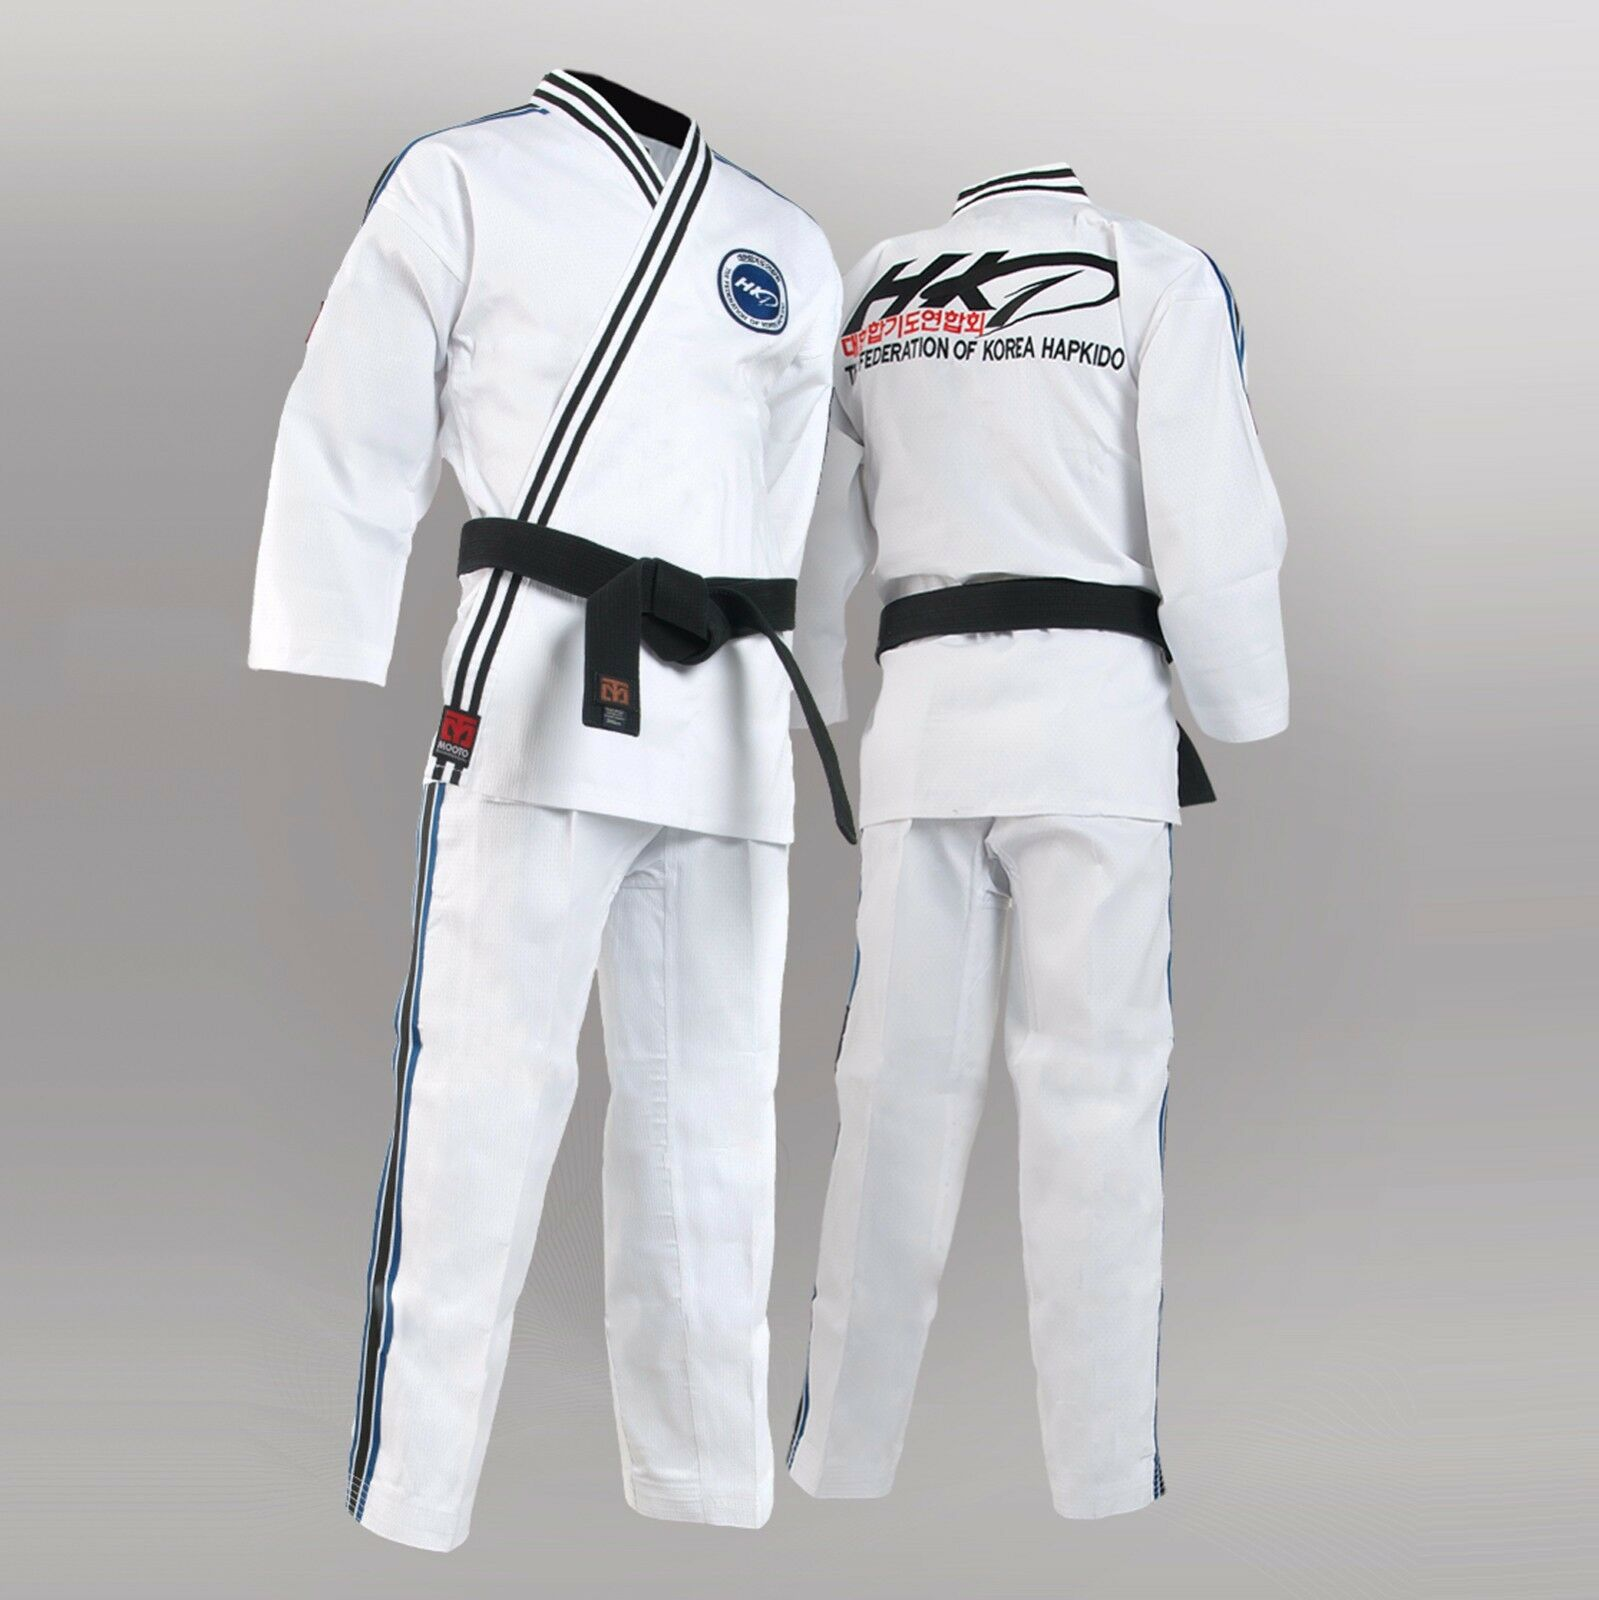 Mooto Official Original Korean Hapkido Federation Uniform Dobok Gi  HKD White New  the most fashionable